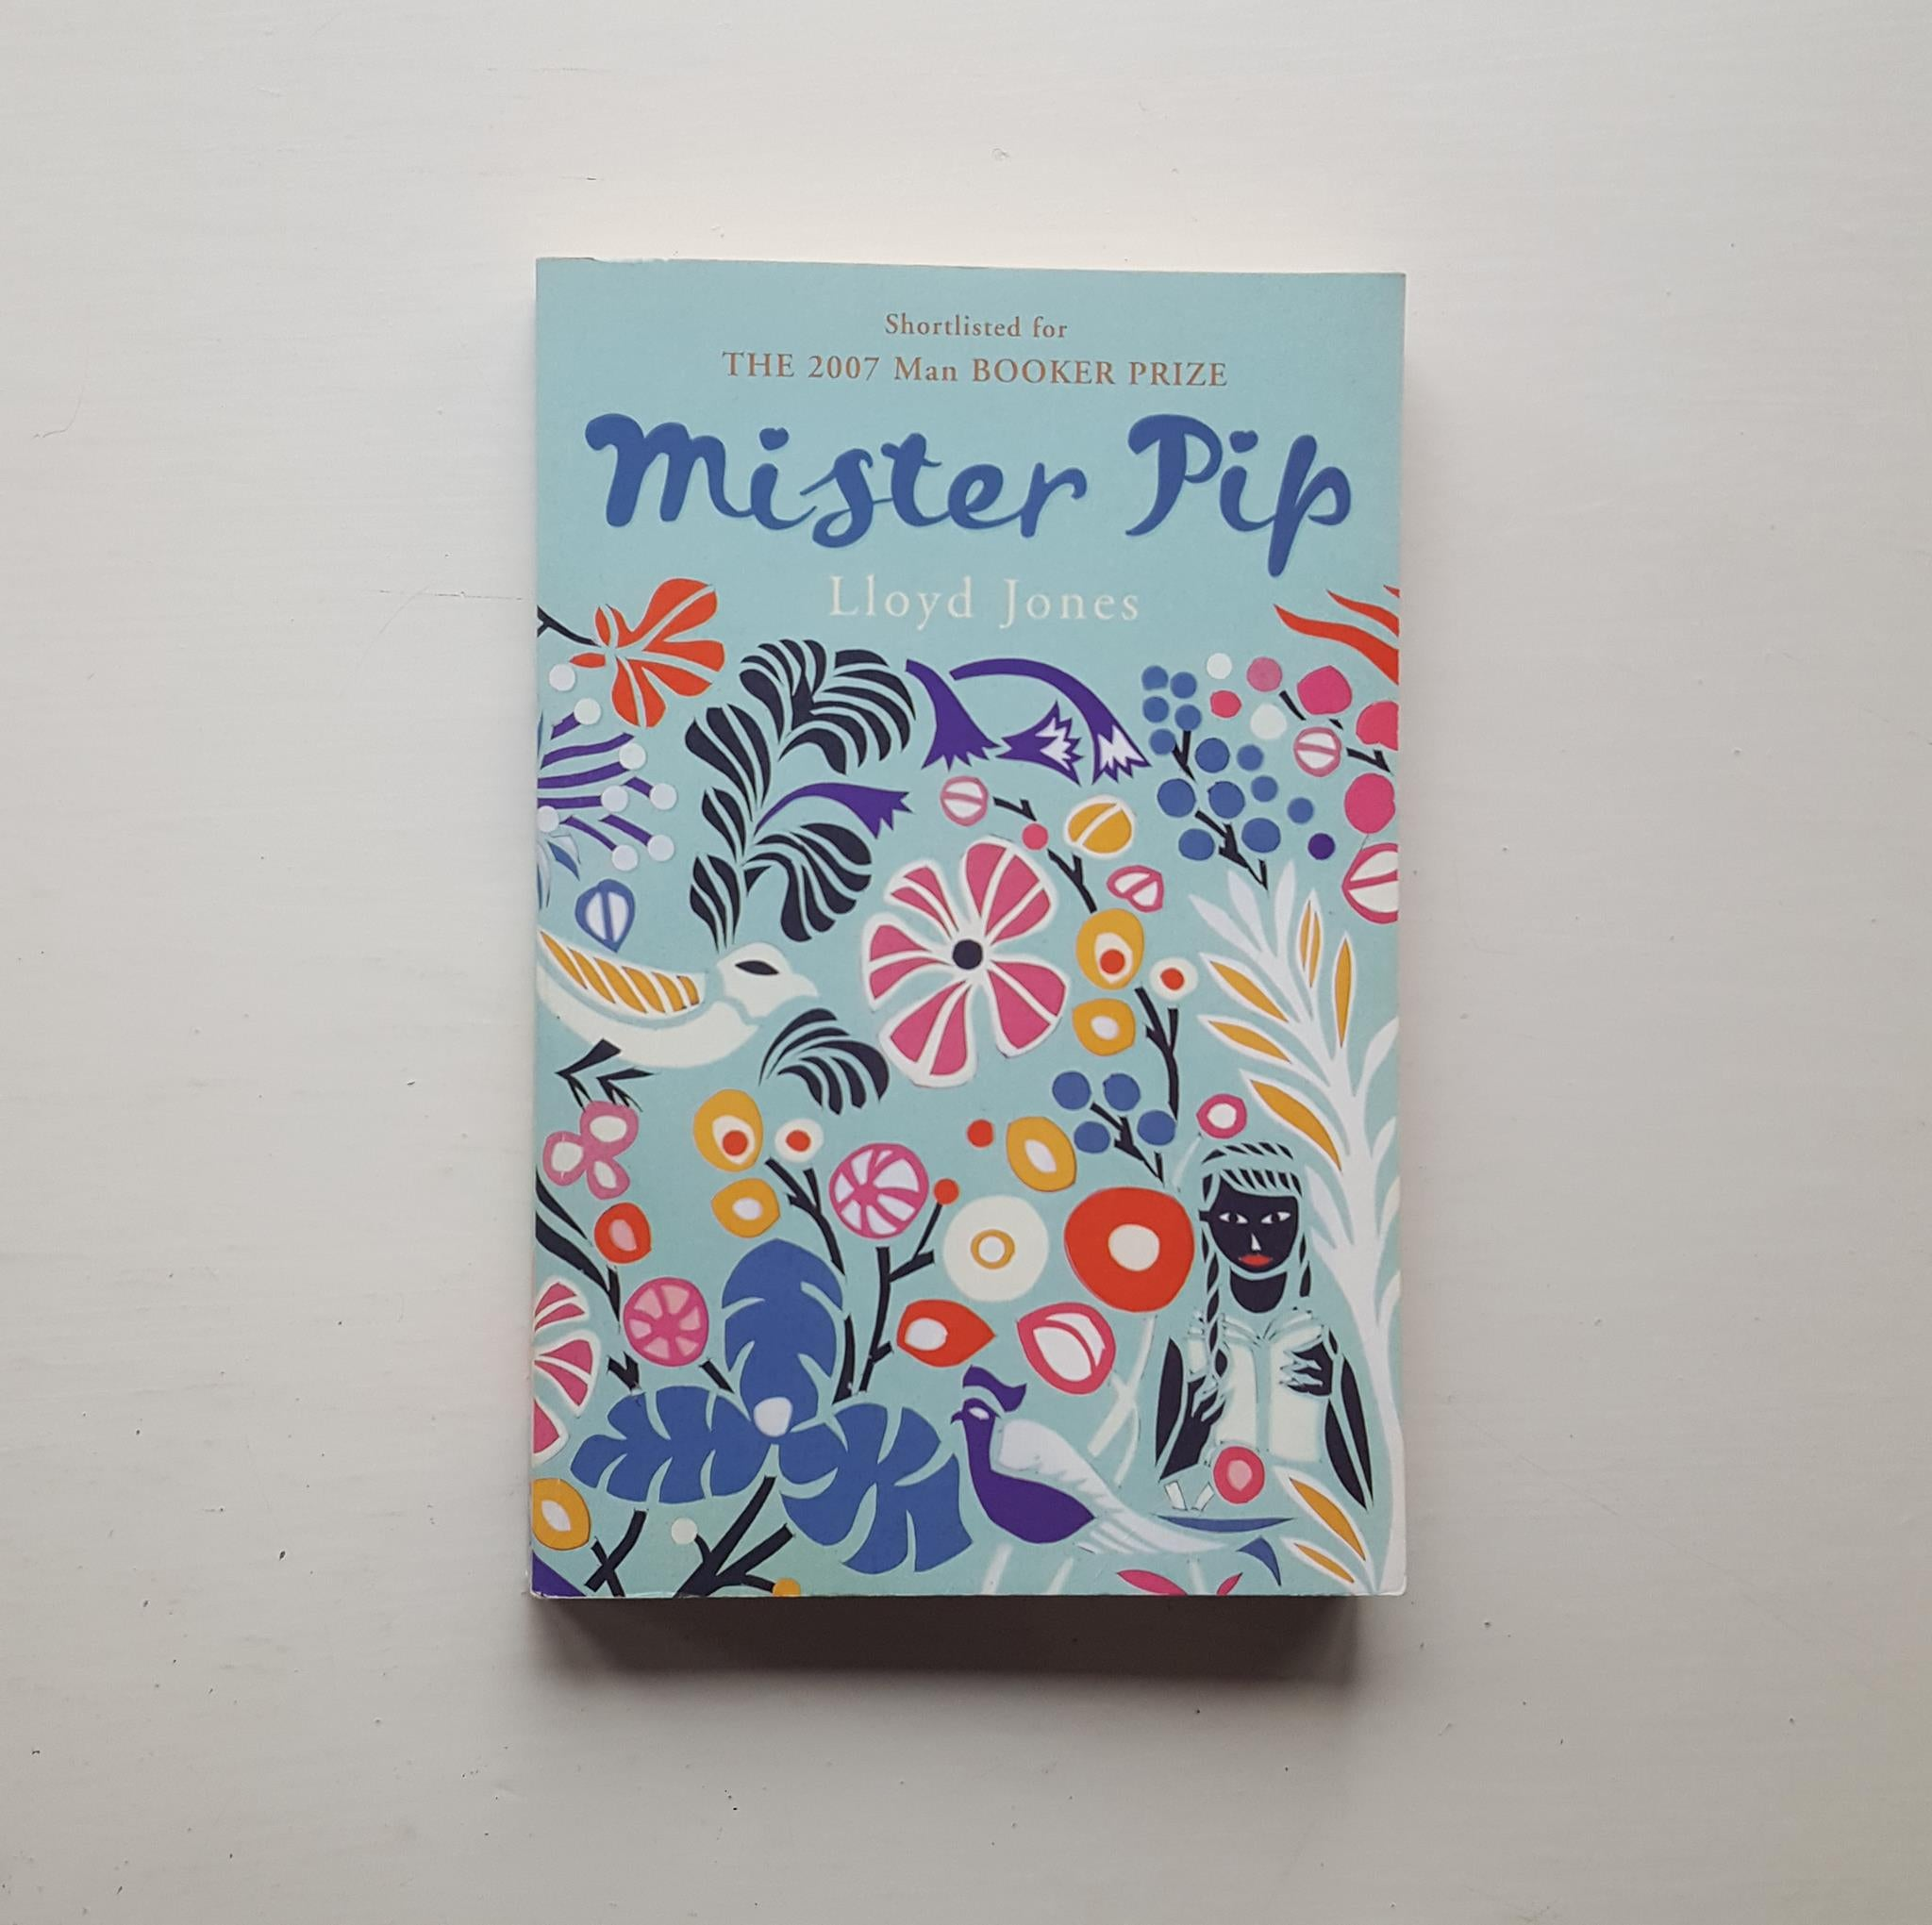 Mister Pip by Lloyd Jones